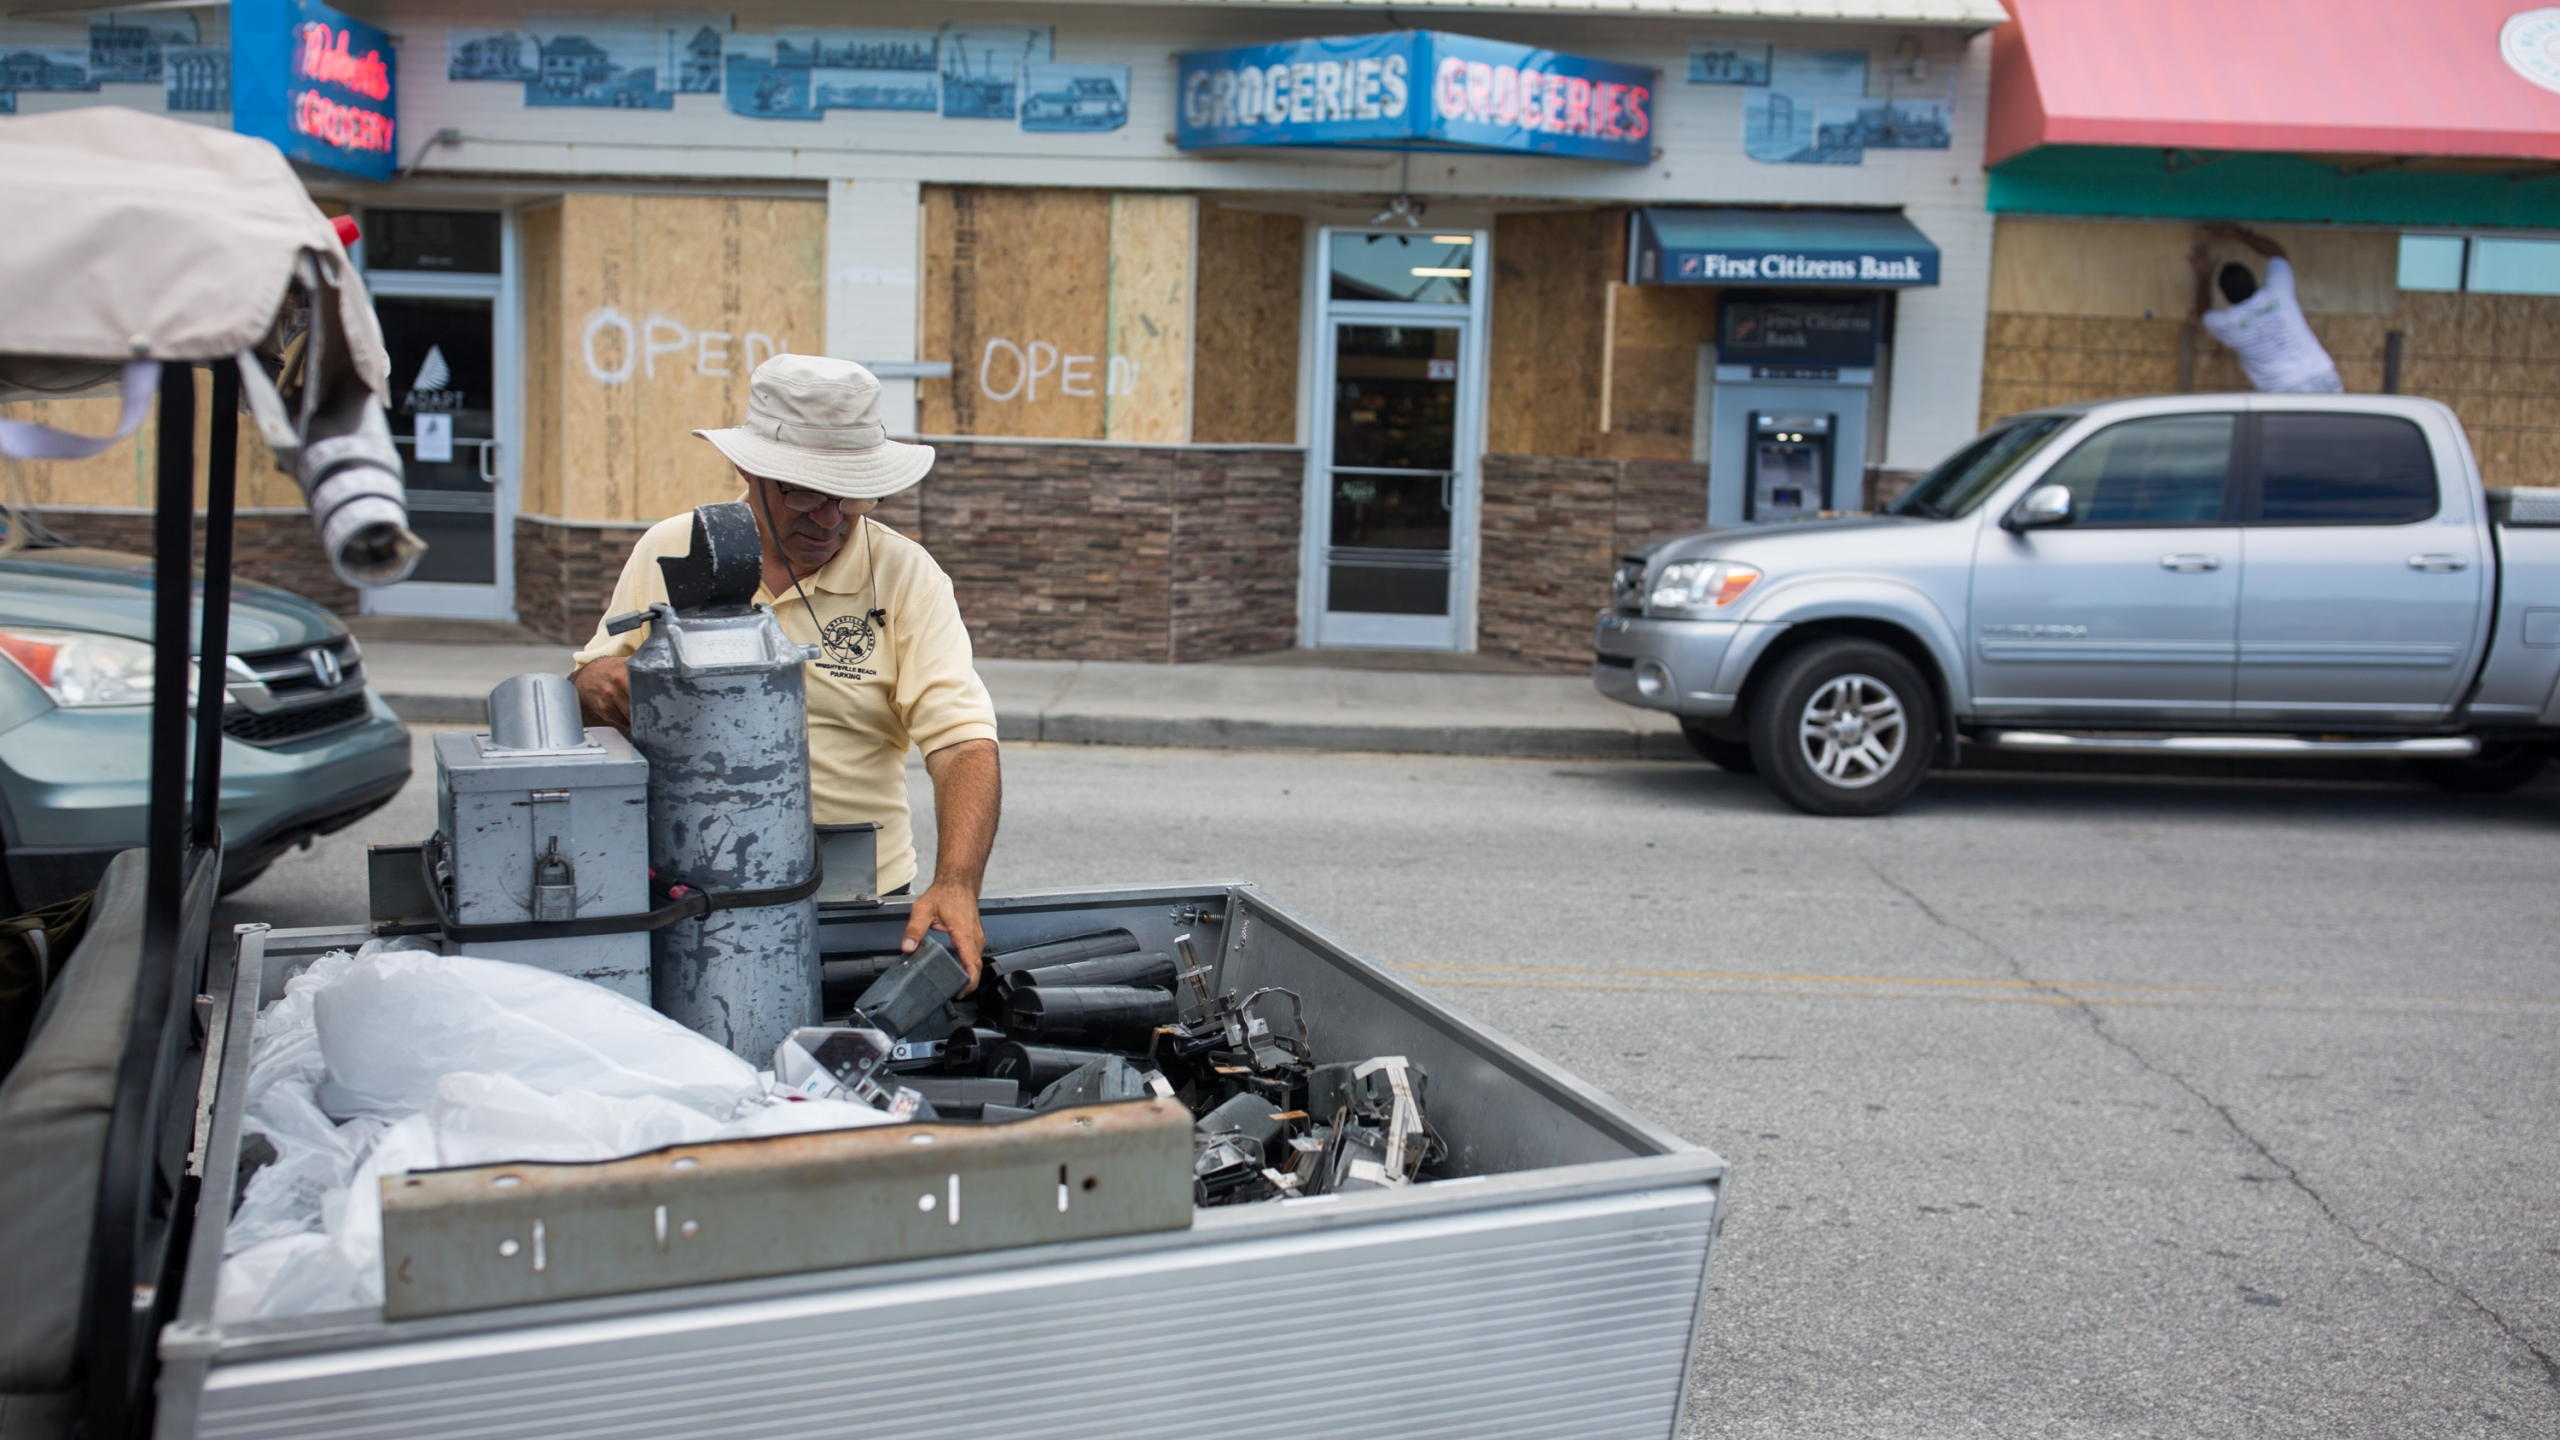 Mary Burdwood, an employee of the Wrightsville Beach Parking office removes the electronic parts of the parking meters on North Lumina Avenue in Wrightsville Beach, North Carolina on Sept. 11, 2018, removing the meters in anticipation of Hurricane Florence's high storm surge. (Credit: Logan Cyrus/AFP/Getty Images)